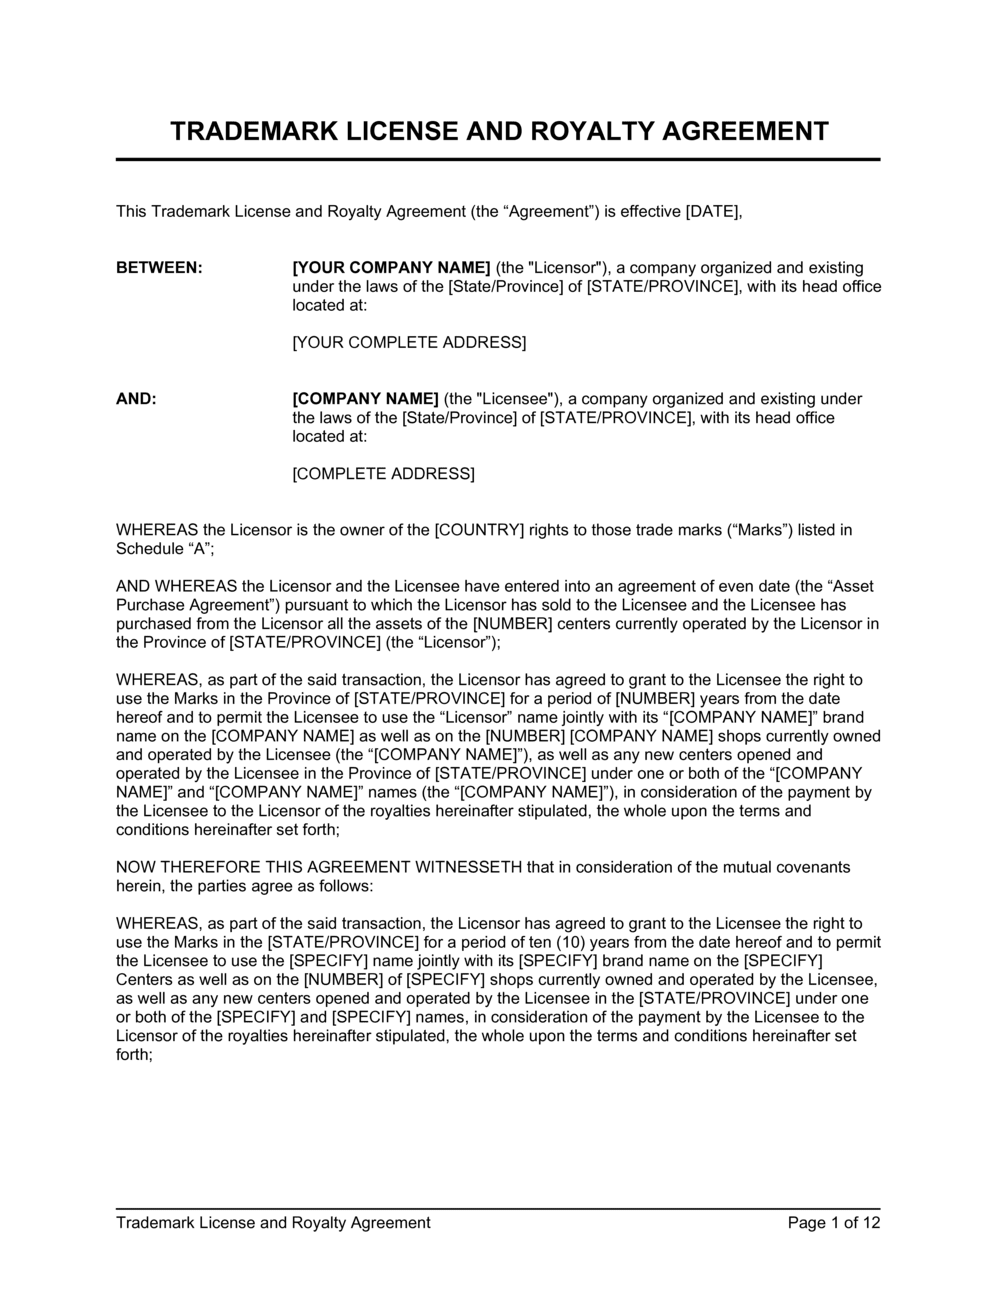 Business-in-a-Box's Trademark License and Royalty Agreement Template